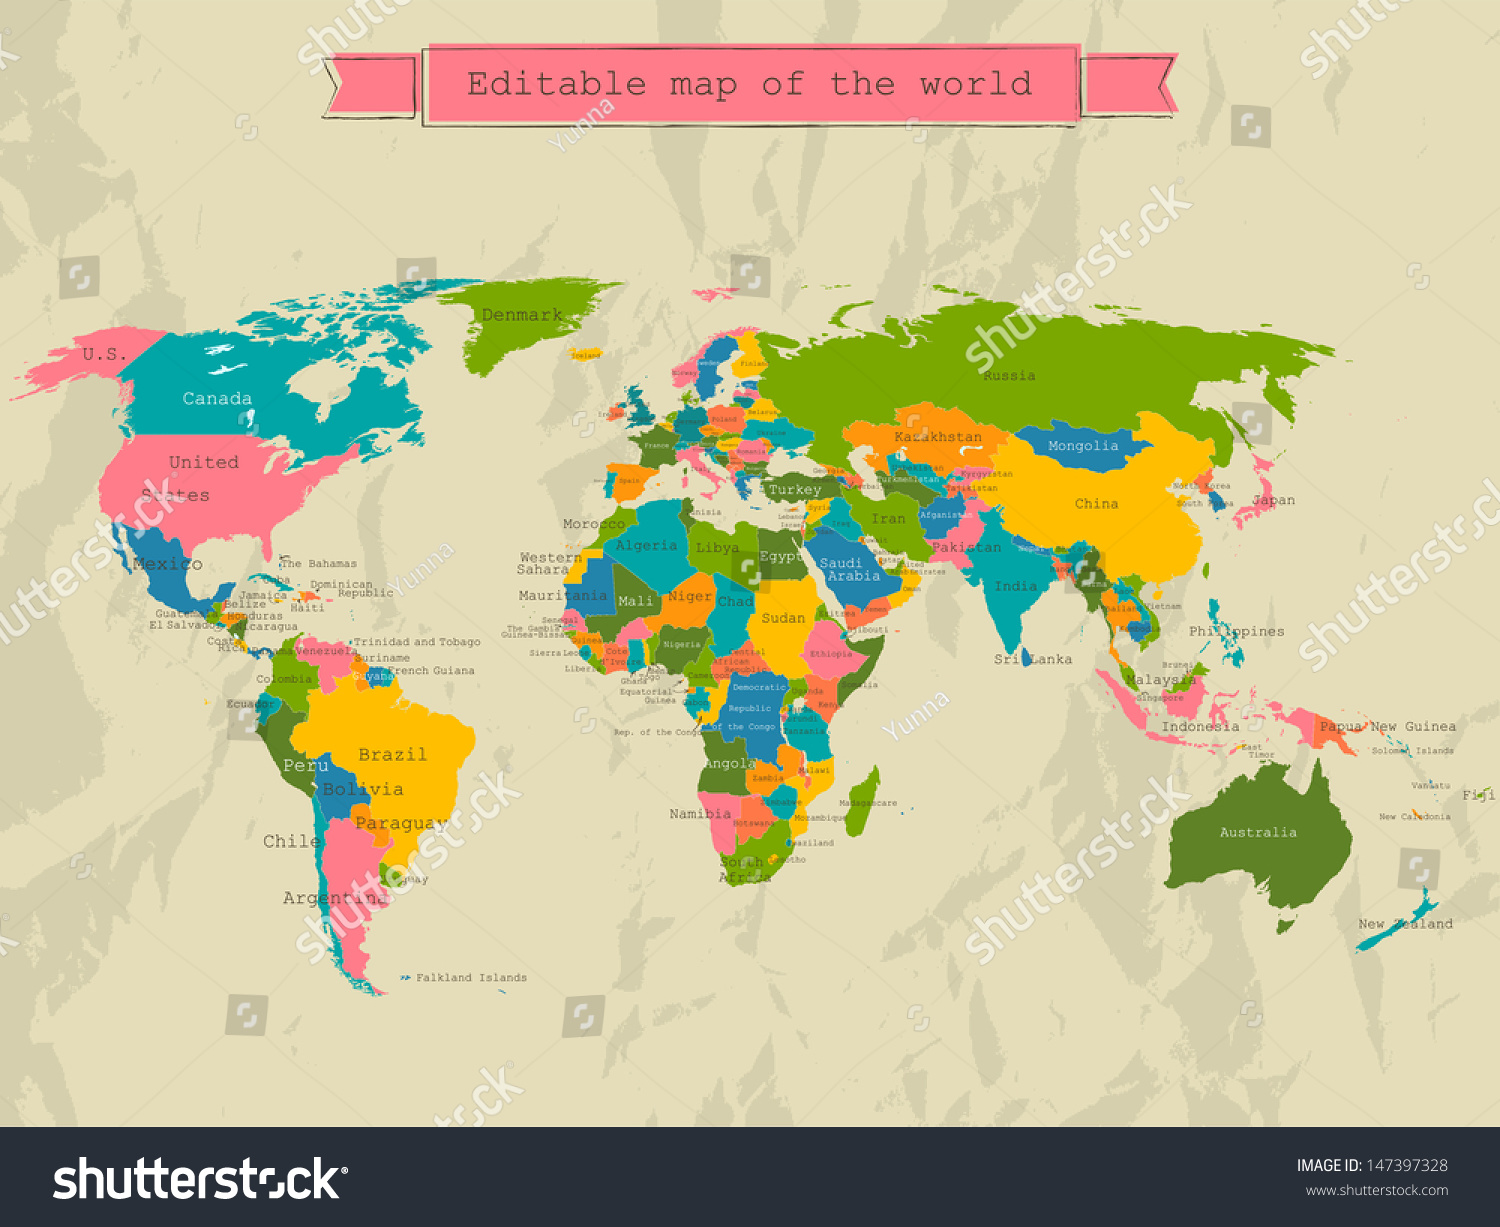 Editable World Map All Countries Vector Stock Vector 147397328 Shutterstock